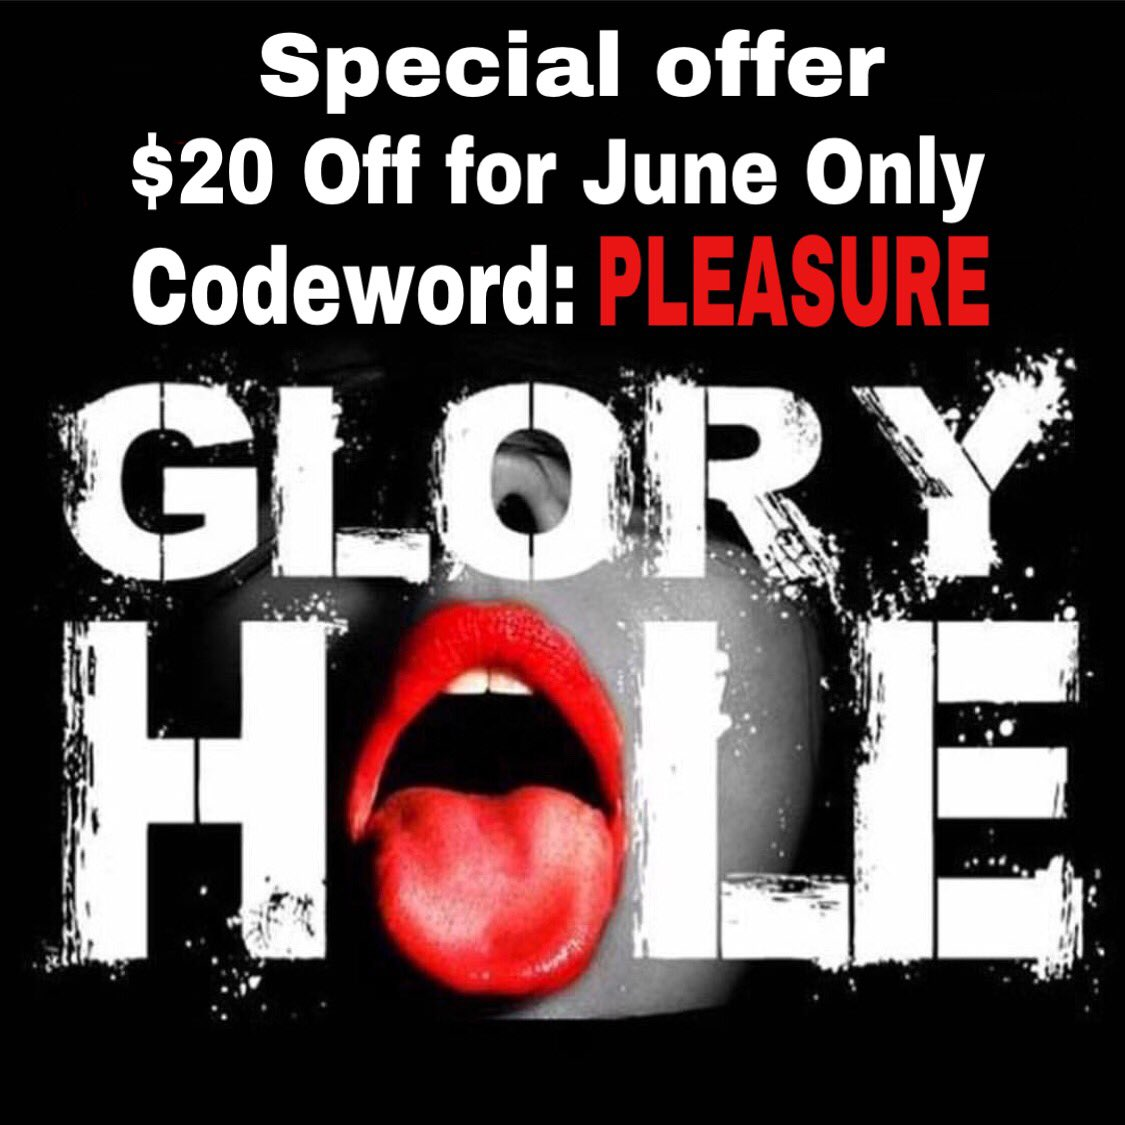 Password for glory hole 3